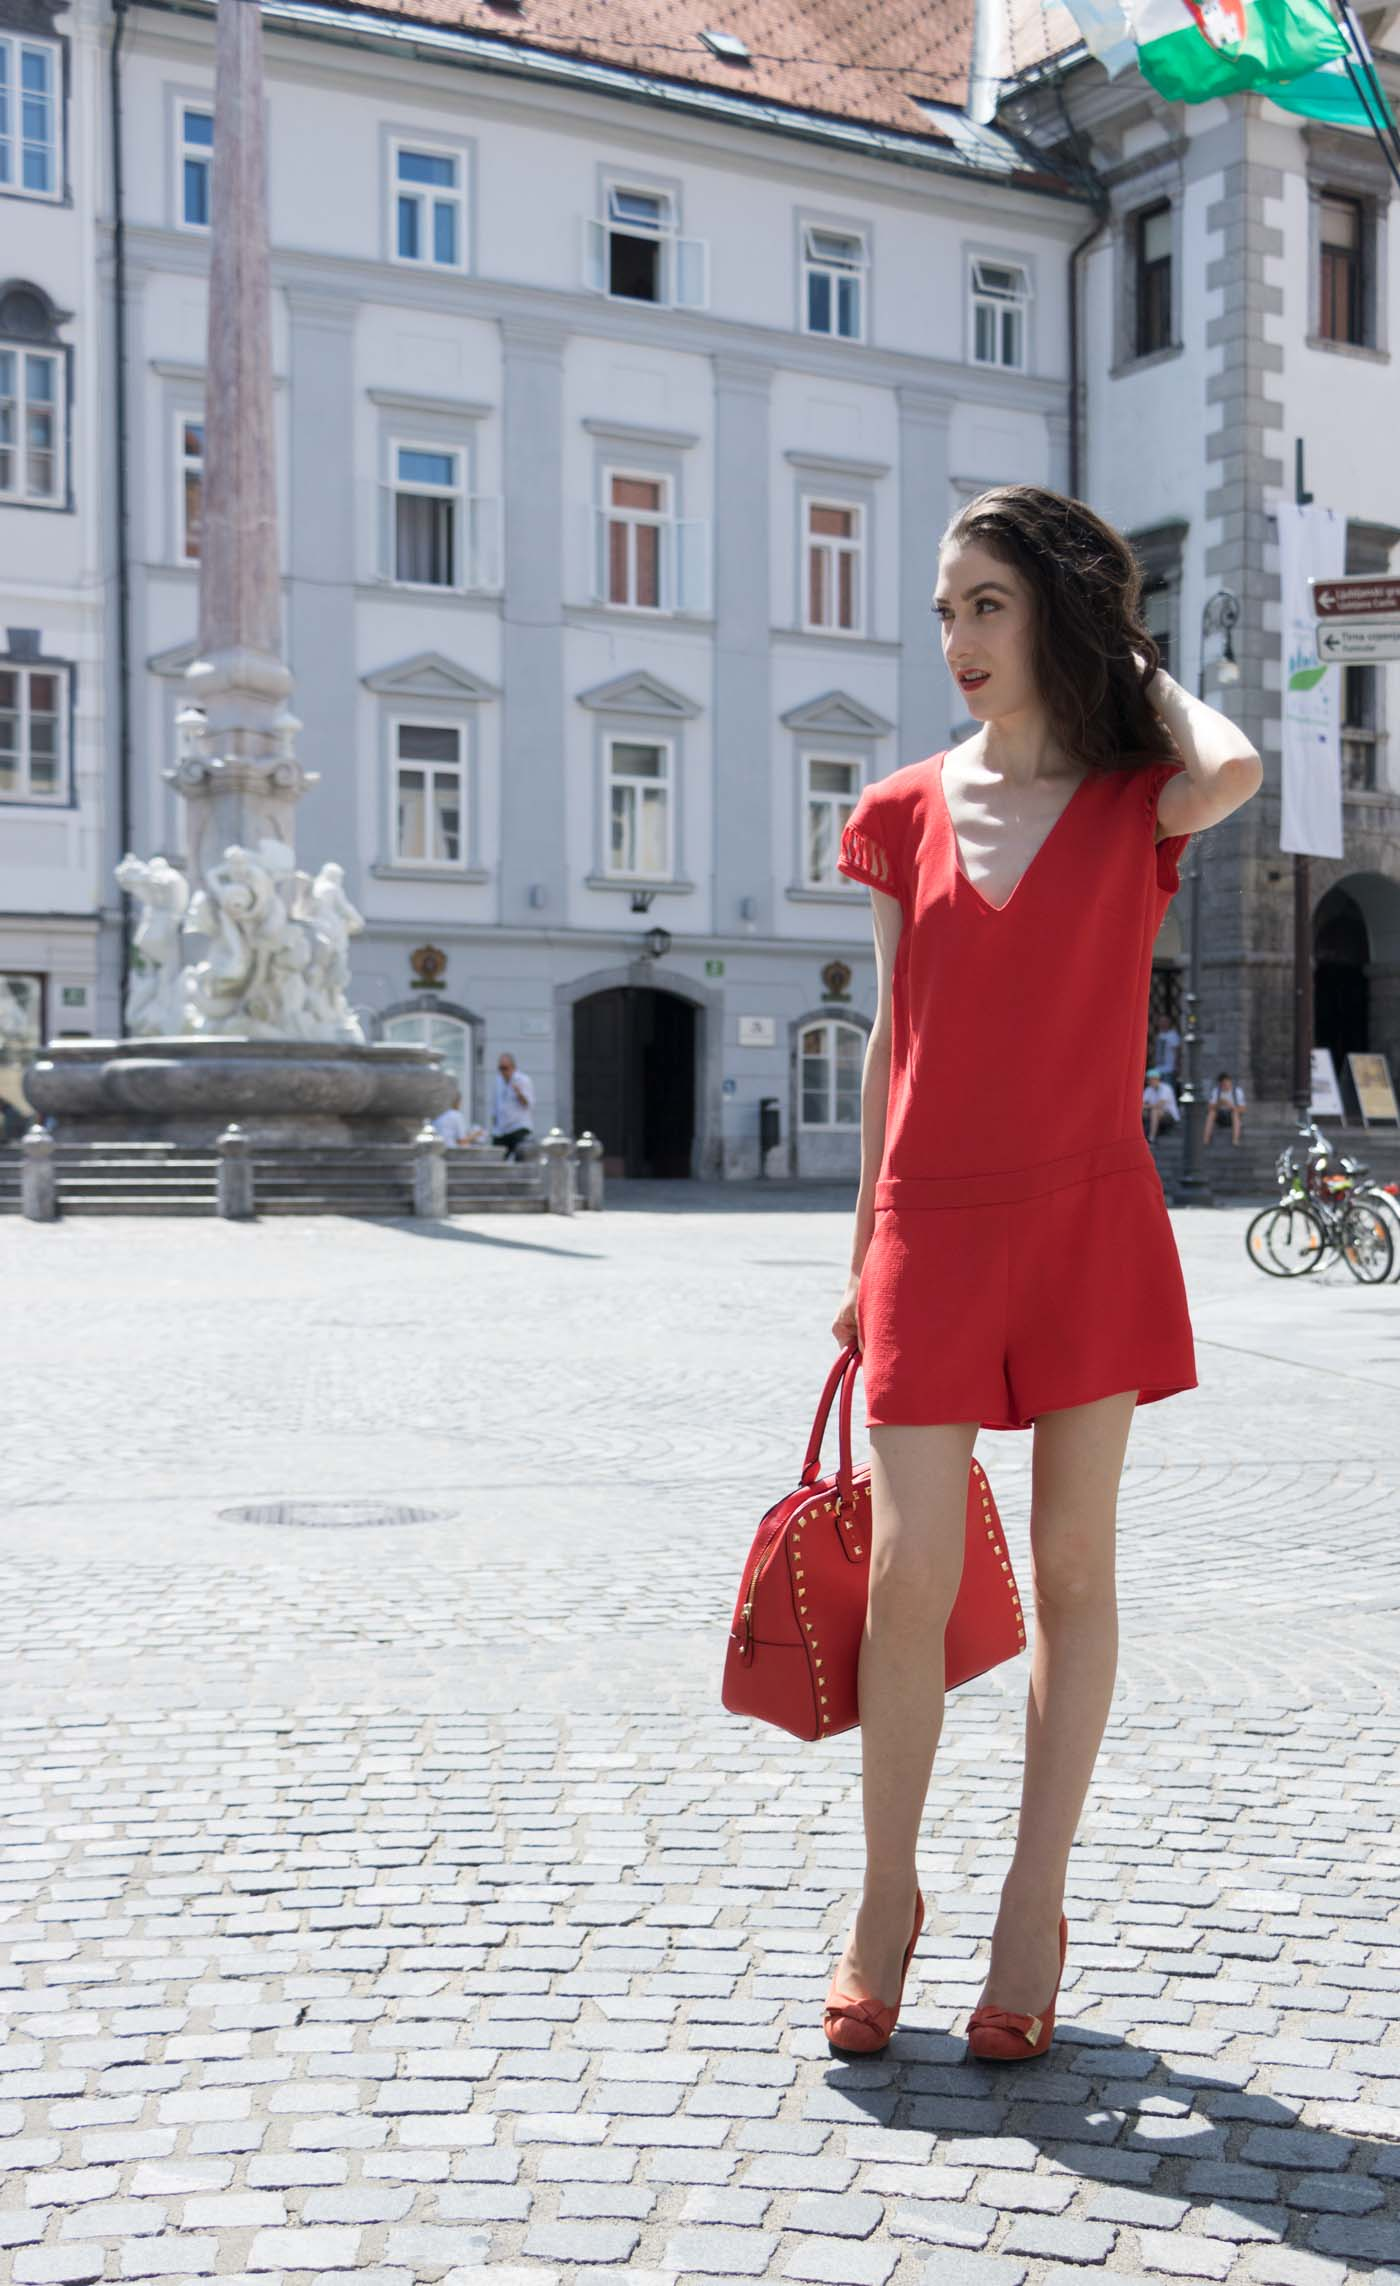 Fashion Blogger Veronika Lipar of Brunette from Wall Street on how to wear red - Fashion Trends 2017